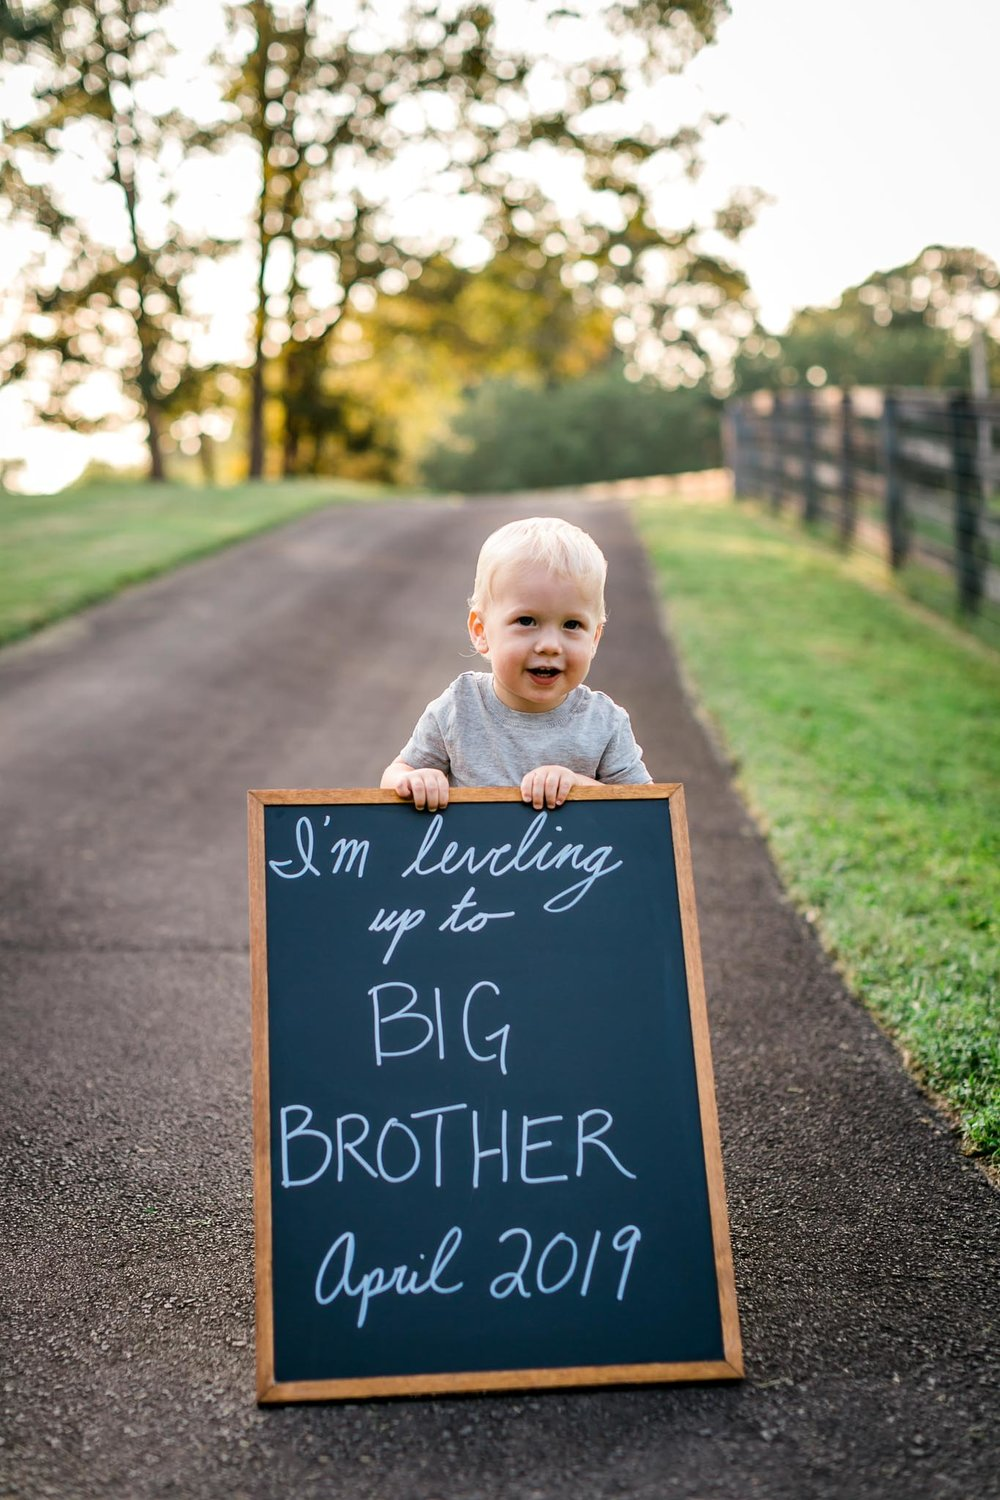 Leveling up to big brother chalkboard sign | By G. Lin Photography | Rougemont Family Photographer